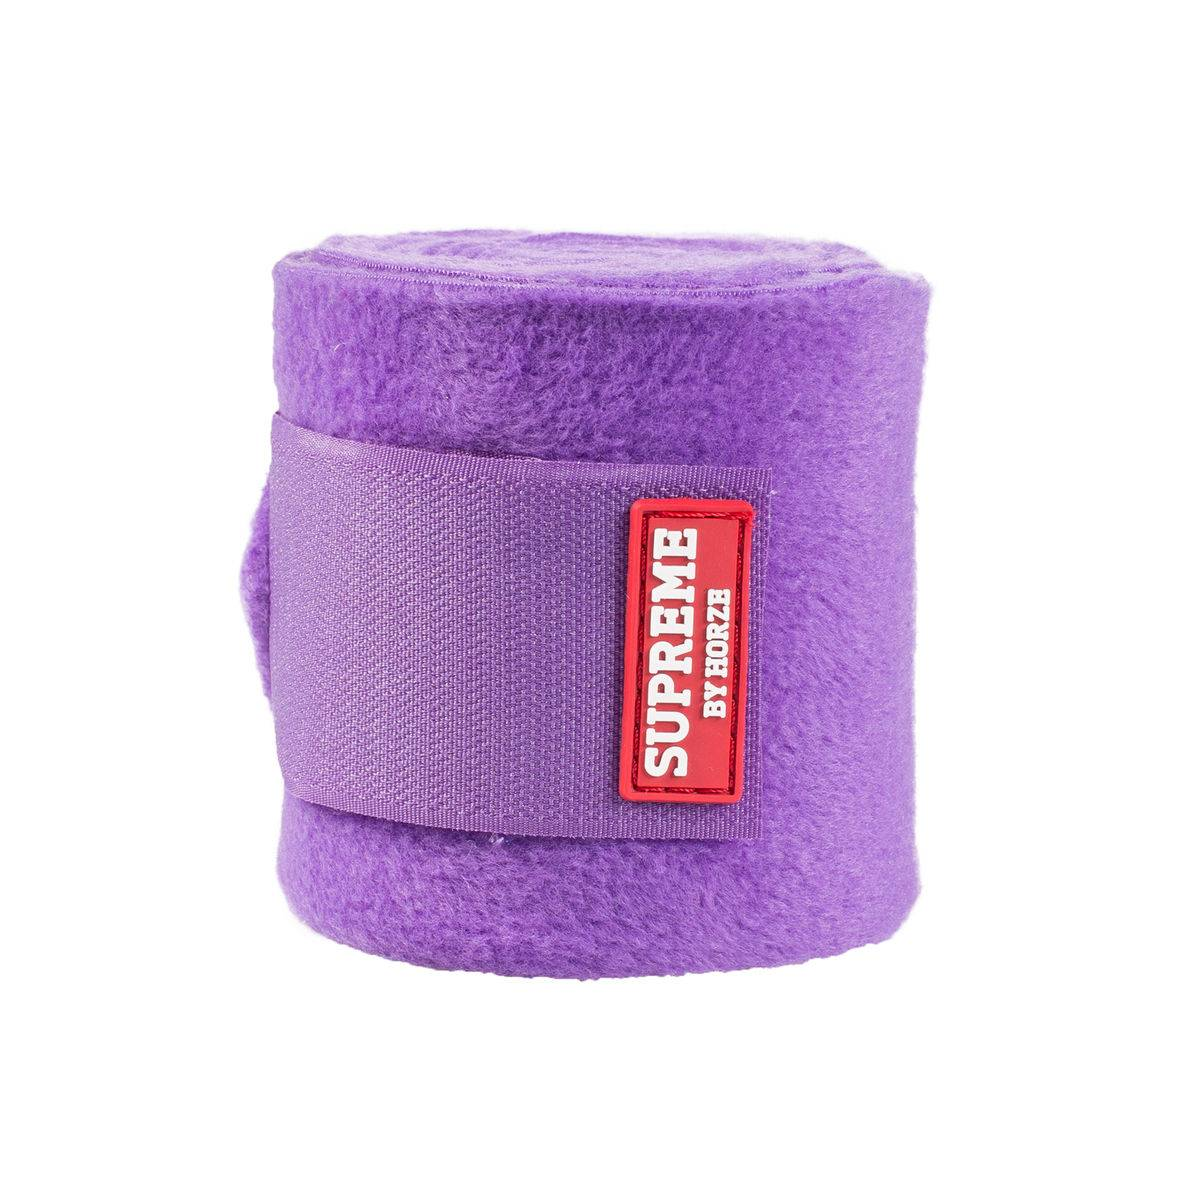 Horze Embrace Fleece Polo Wraps